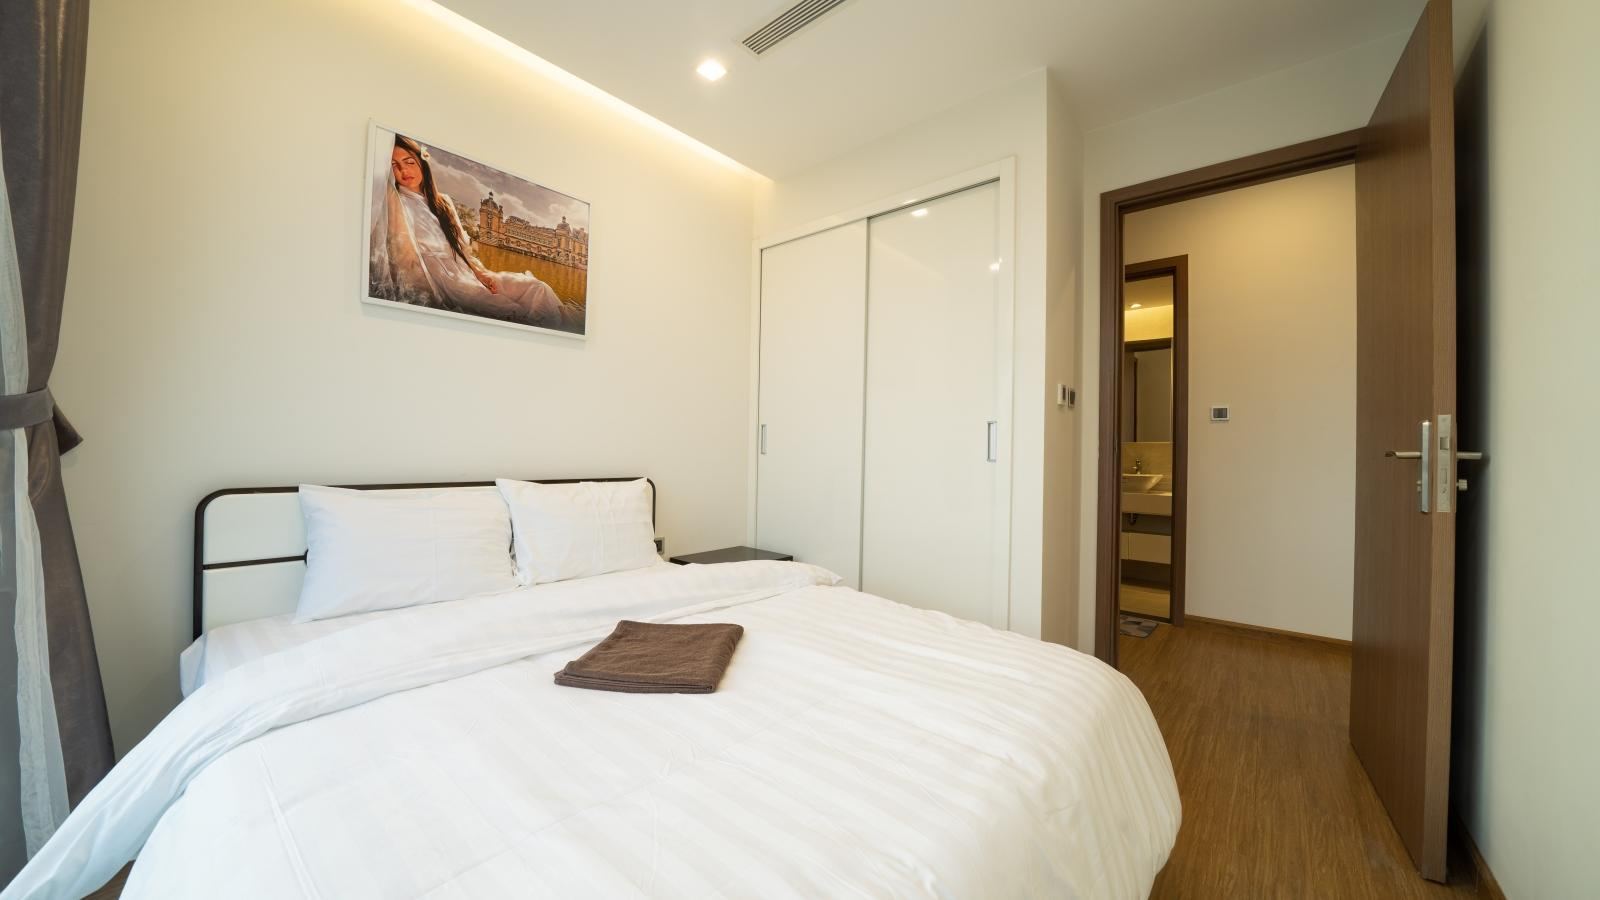 SV APARTMENT   PERFECT FOR STAYING  CENTRAL HANOI